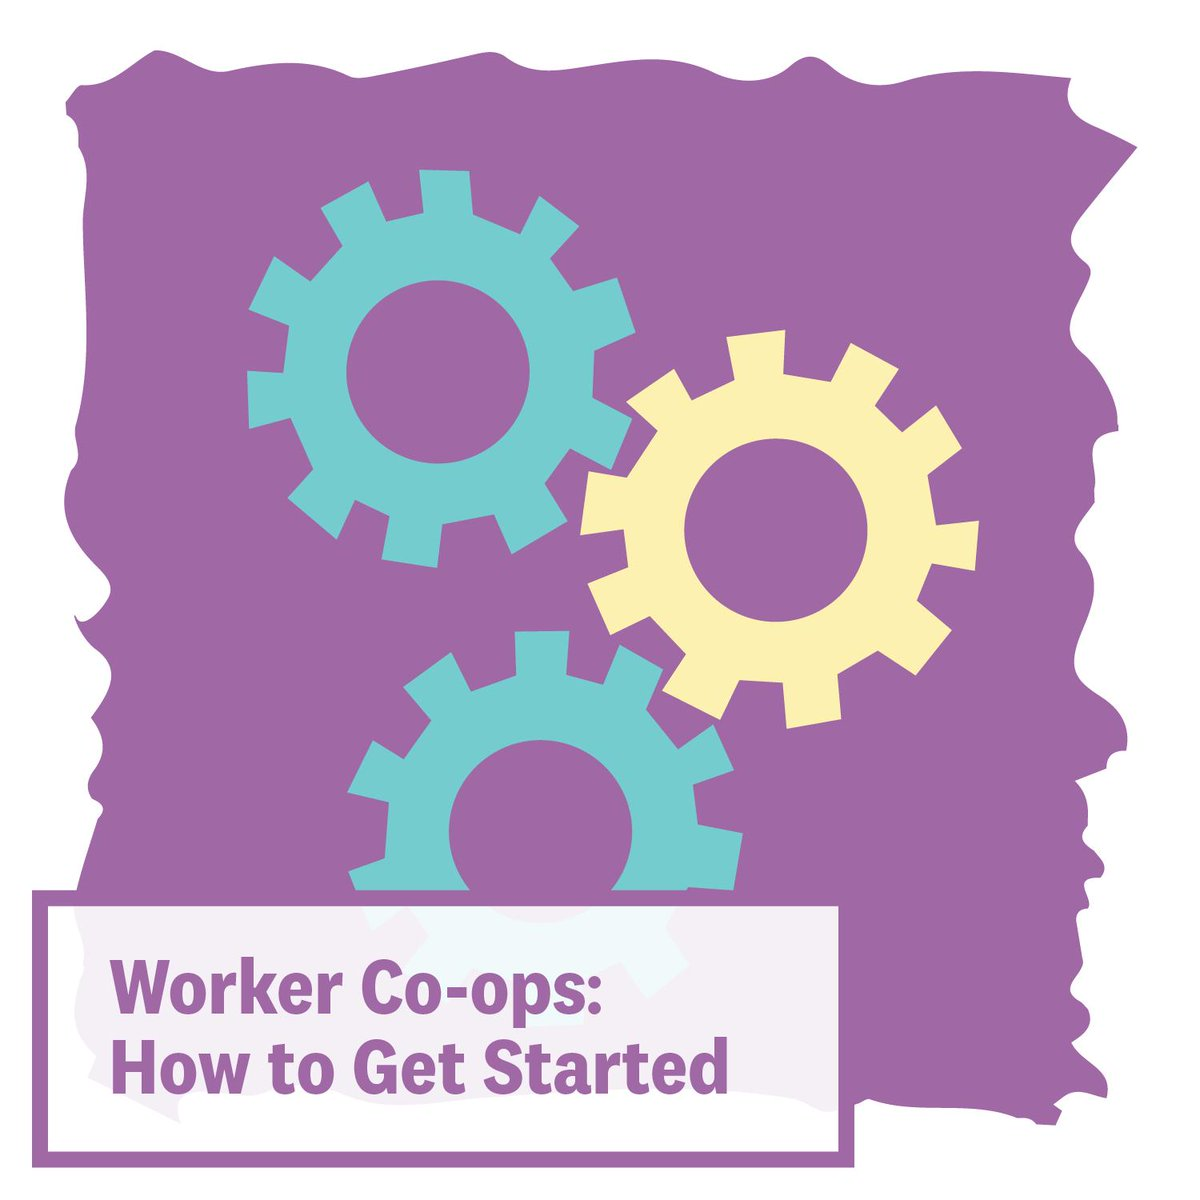 Are you co-operatively minded and interested in local economic transformation? Apply for 10 fully funded places –sponsored by @SumaWholefoods – on our 26 October Worker Co-op: How to Get Started workshops? stirtoaction.com/workshops/work… & (Apply here stirtoactionuk.typeform.com/to/KAyCD6)